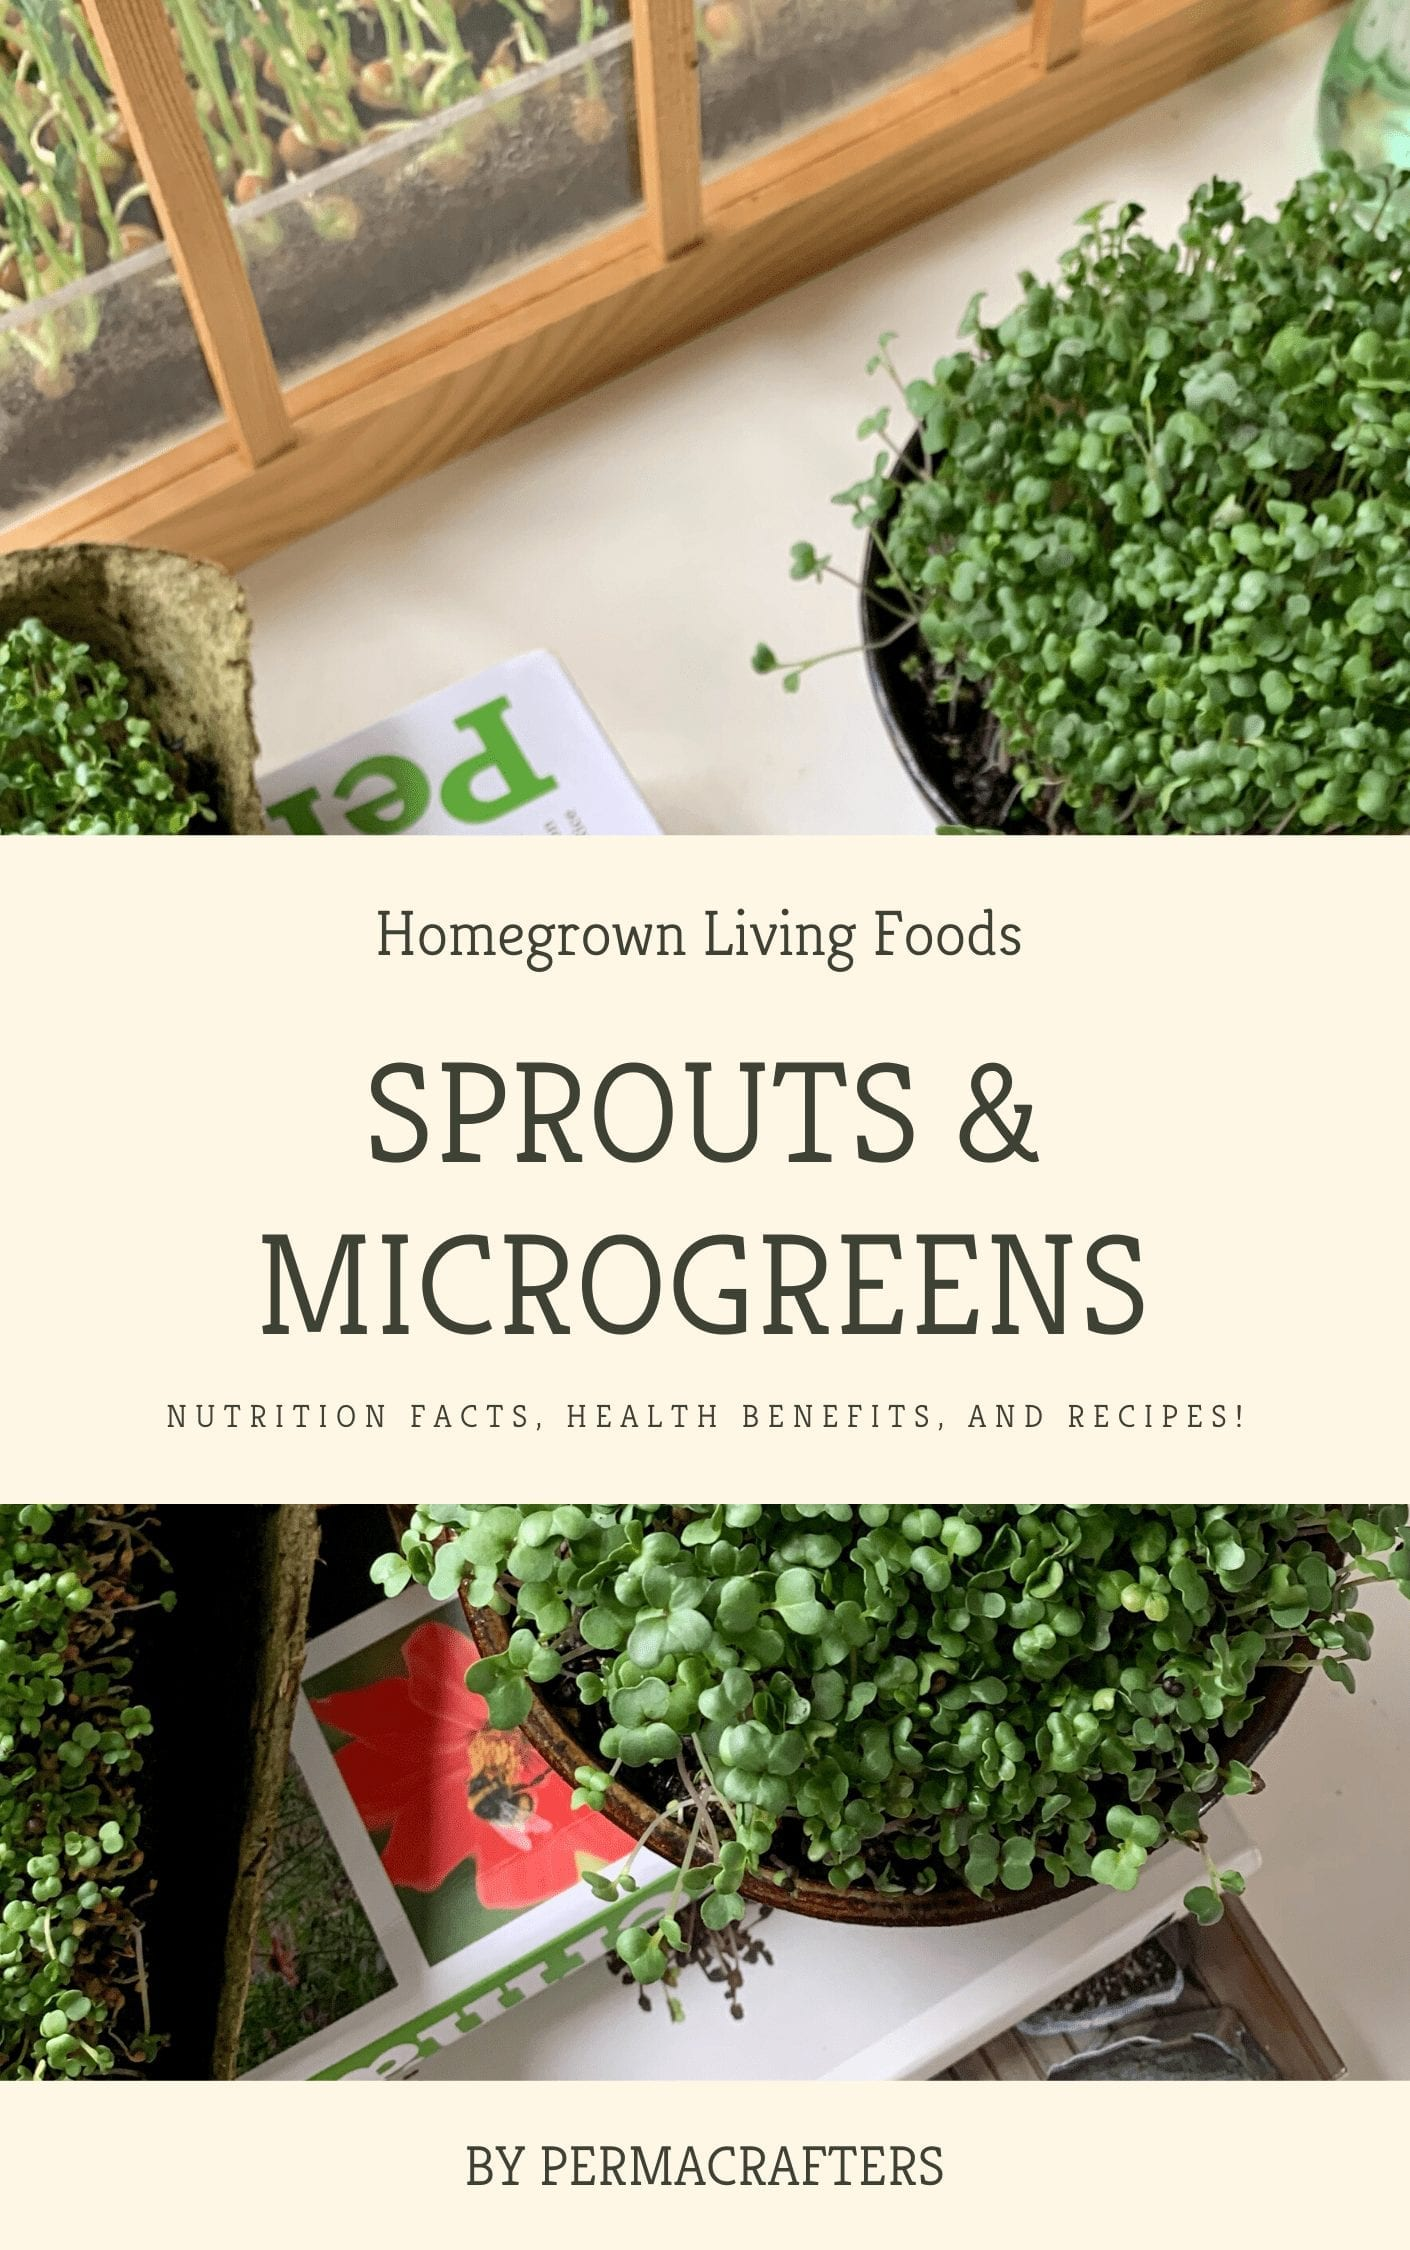 Sprouts & Microgreens Book Cover